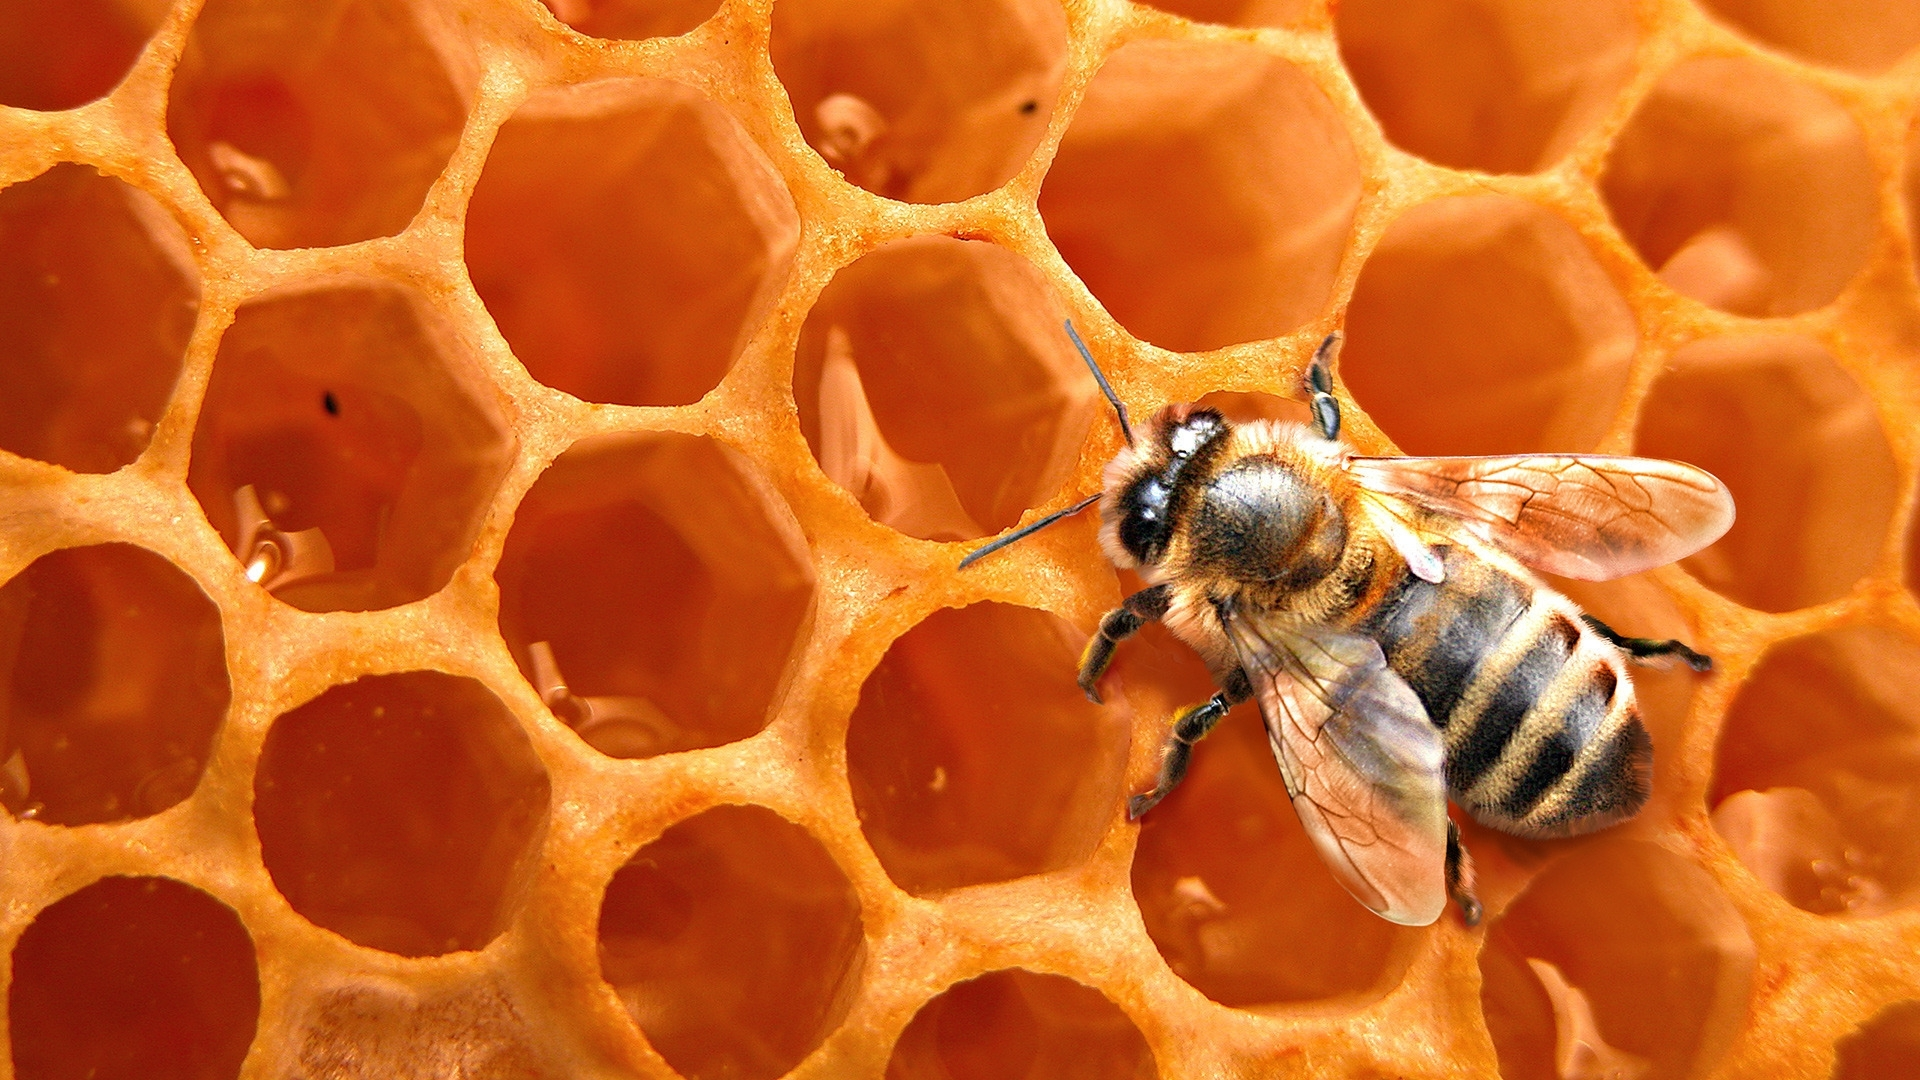 43697 Screensavers and Wallpapers Bees for phone. Download Insects, Bees, Wasps pictures for free